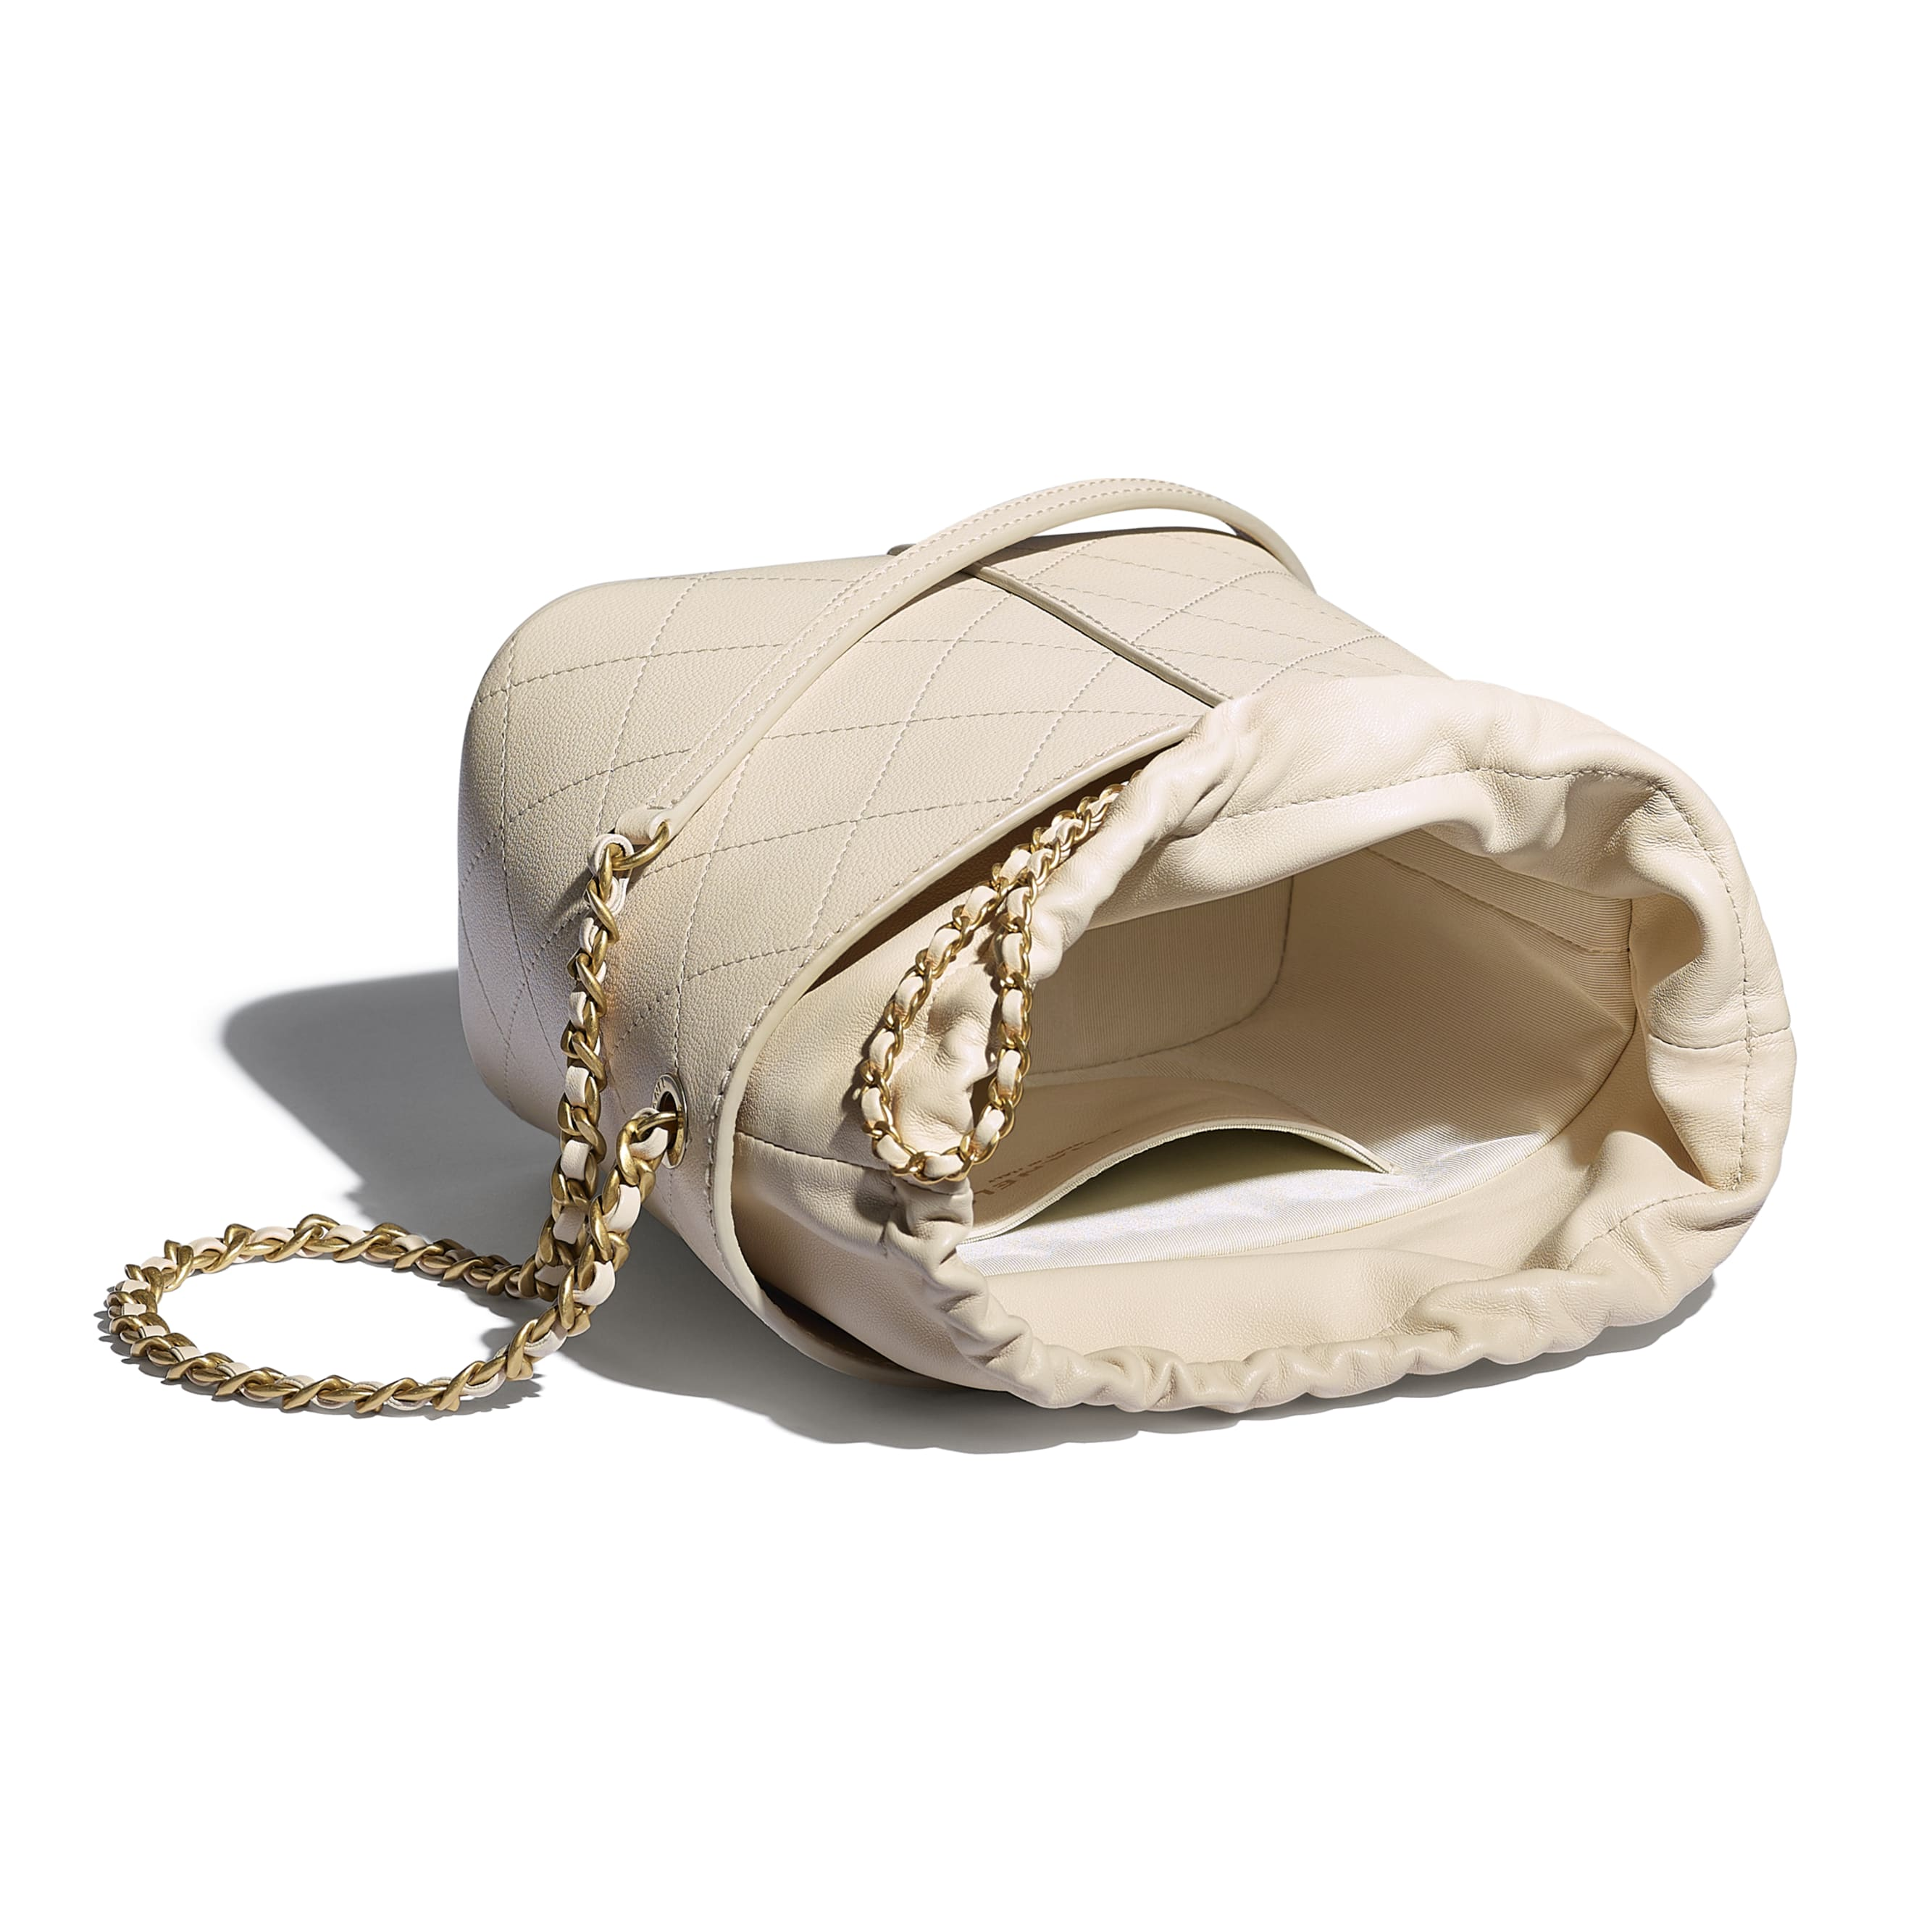 Drawstring Bag - Beige - Grained Lambskin, Smooth Lambskin & Gold-Tone Metal - CHANEL - Other view - see standard sized version